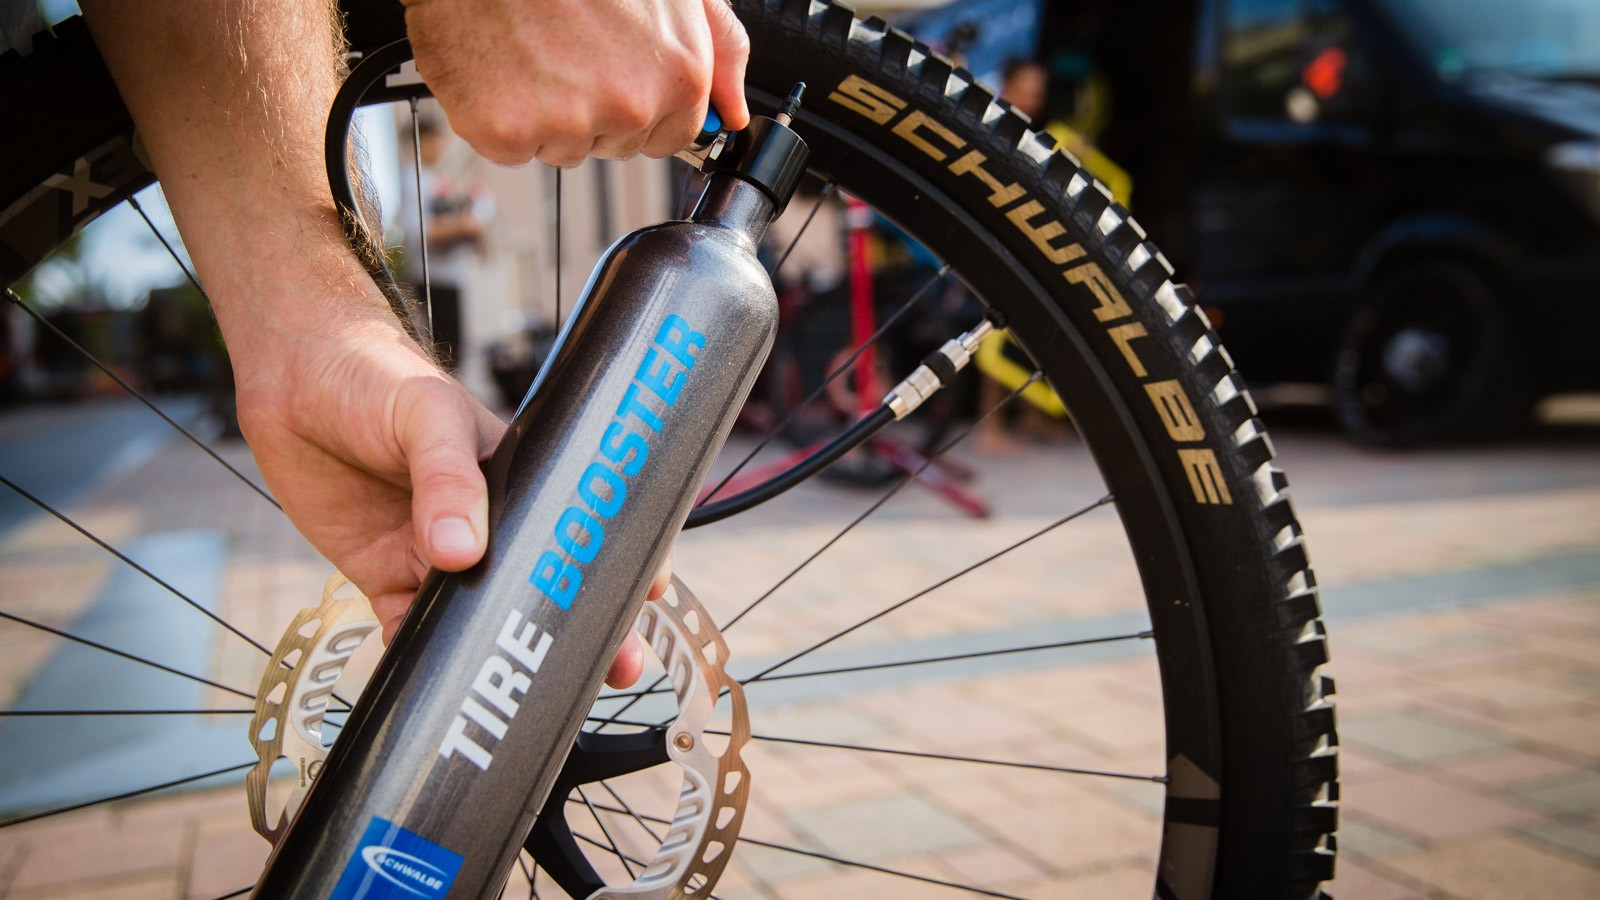 Set up even challenging tubeless tires without compressor